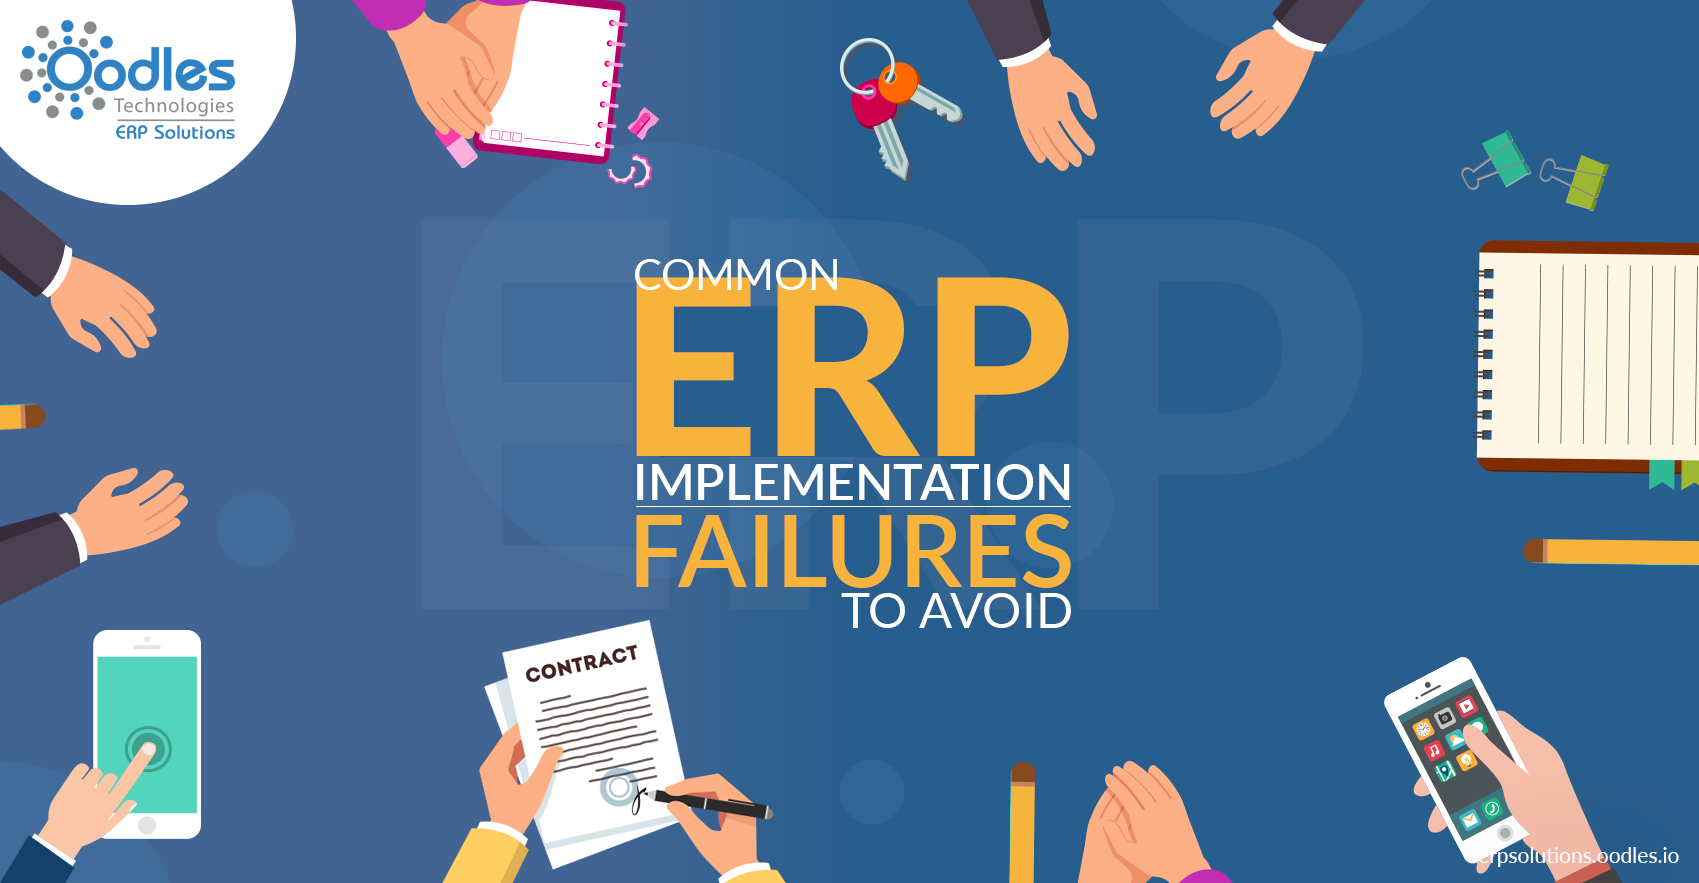 Top ERP implementation failures that you can avoid